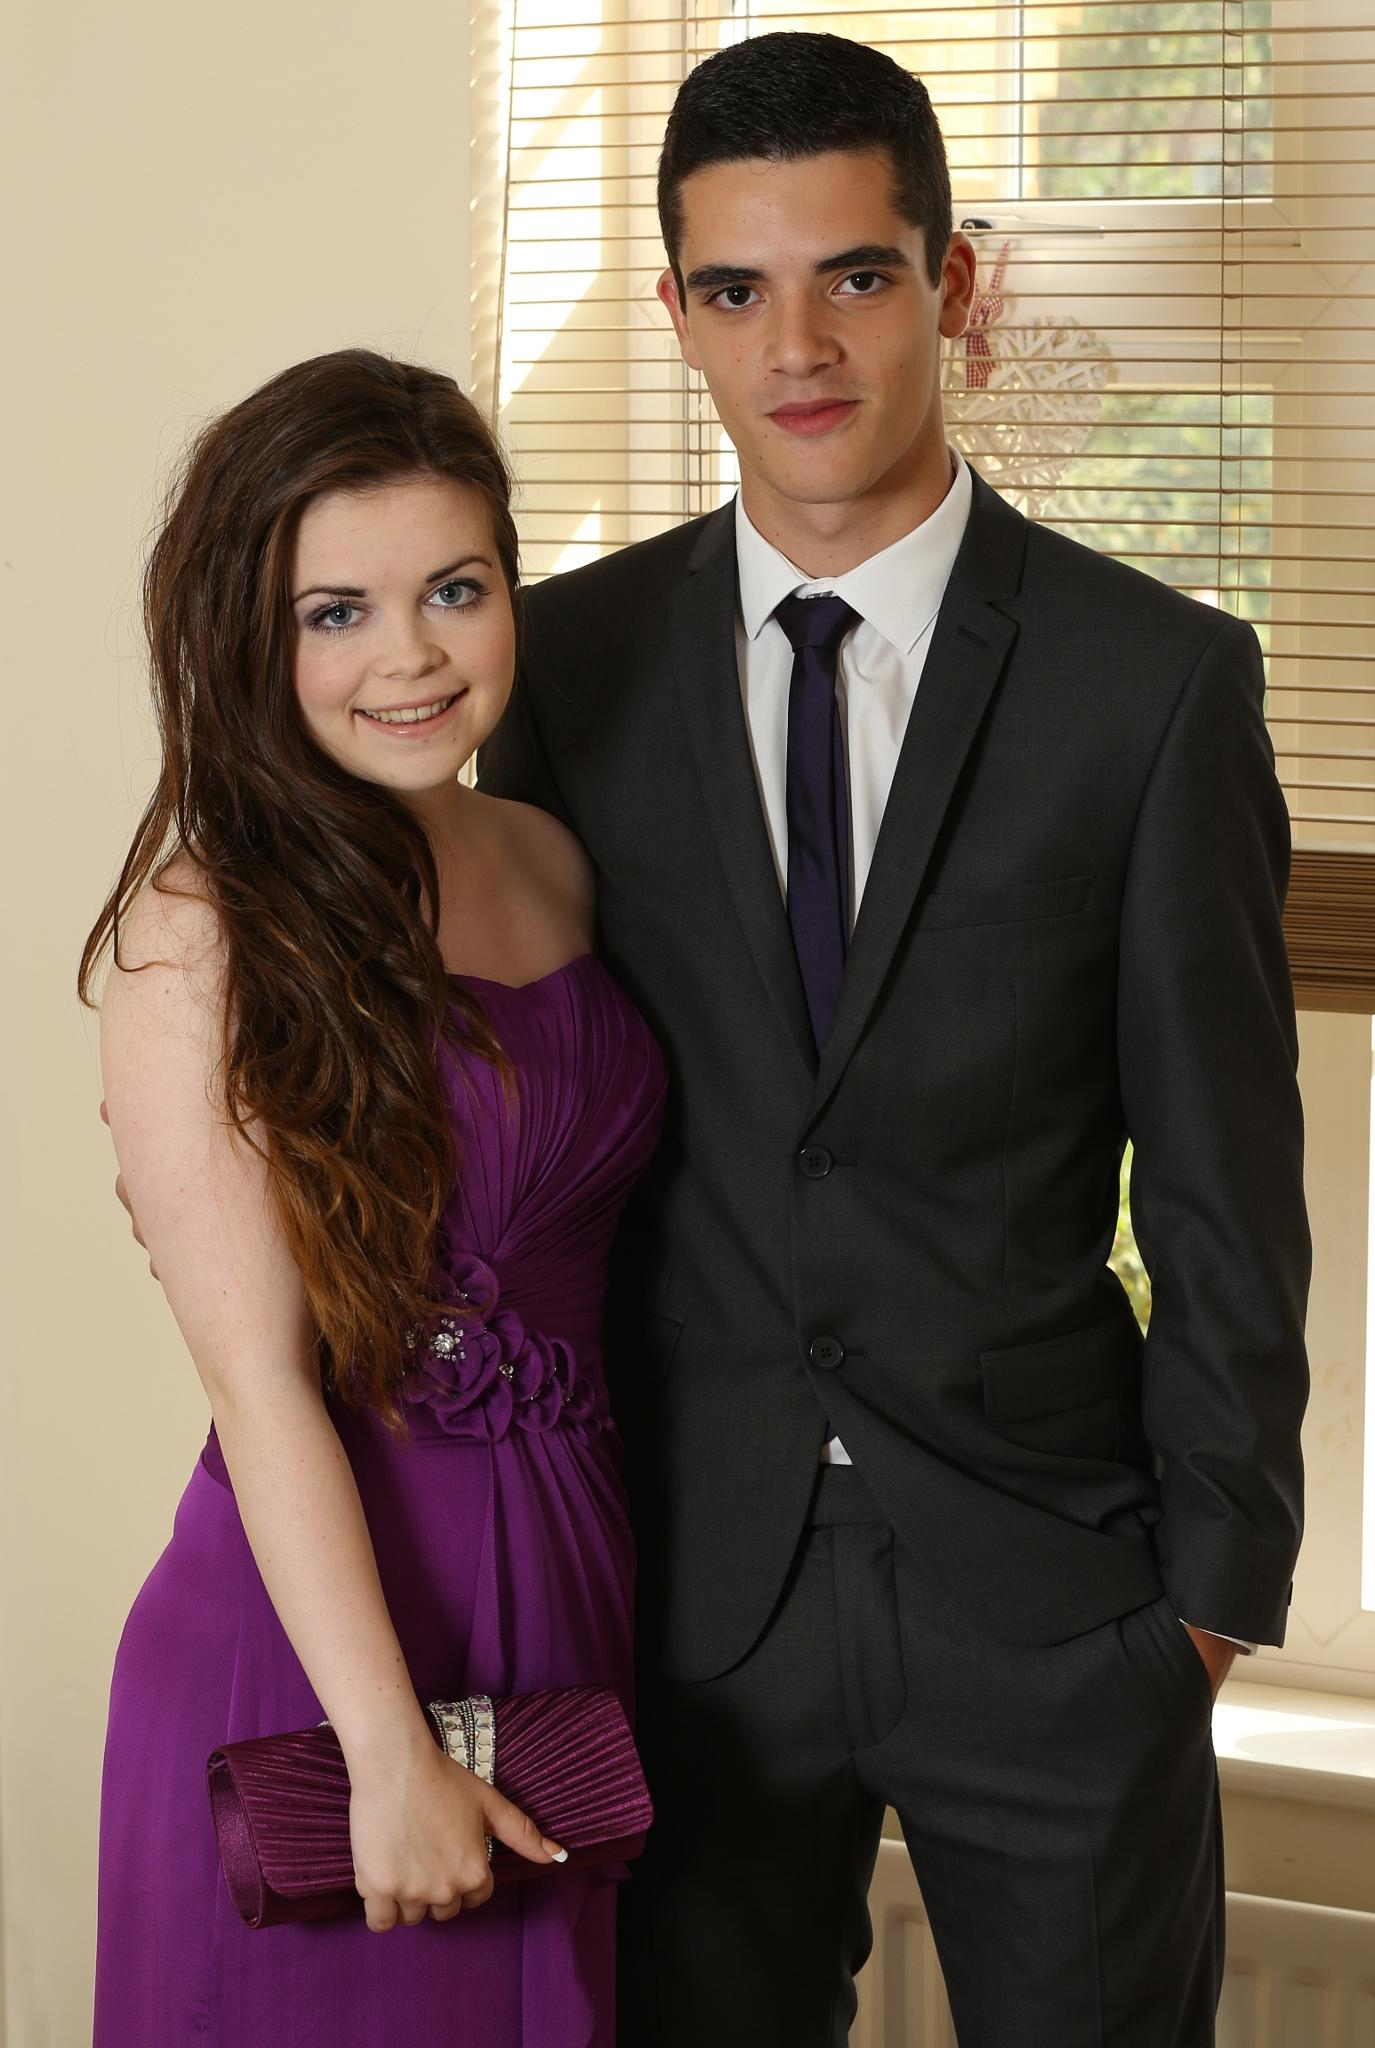 Prom by Peerless Photography